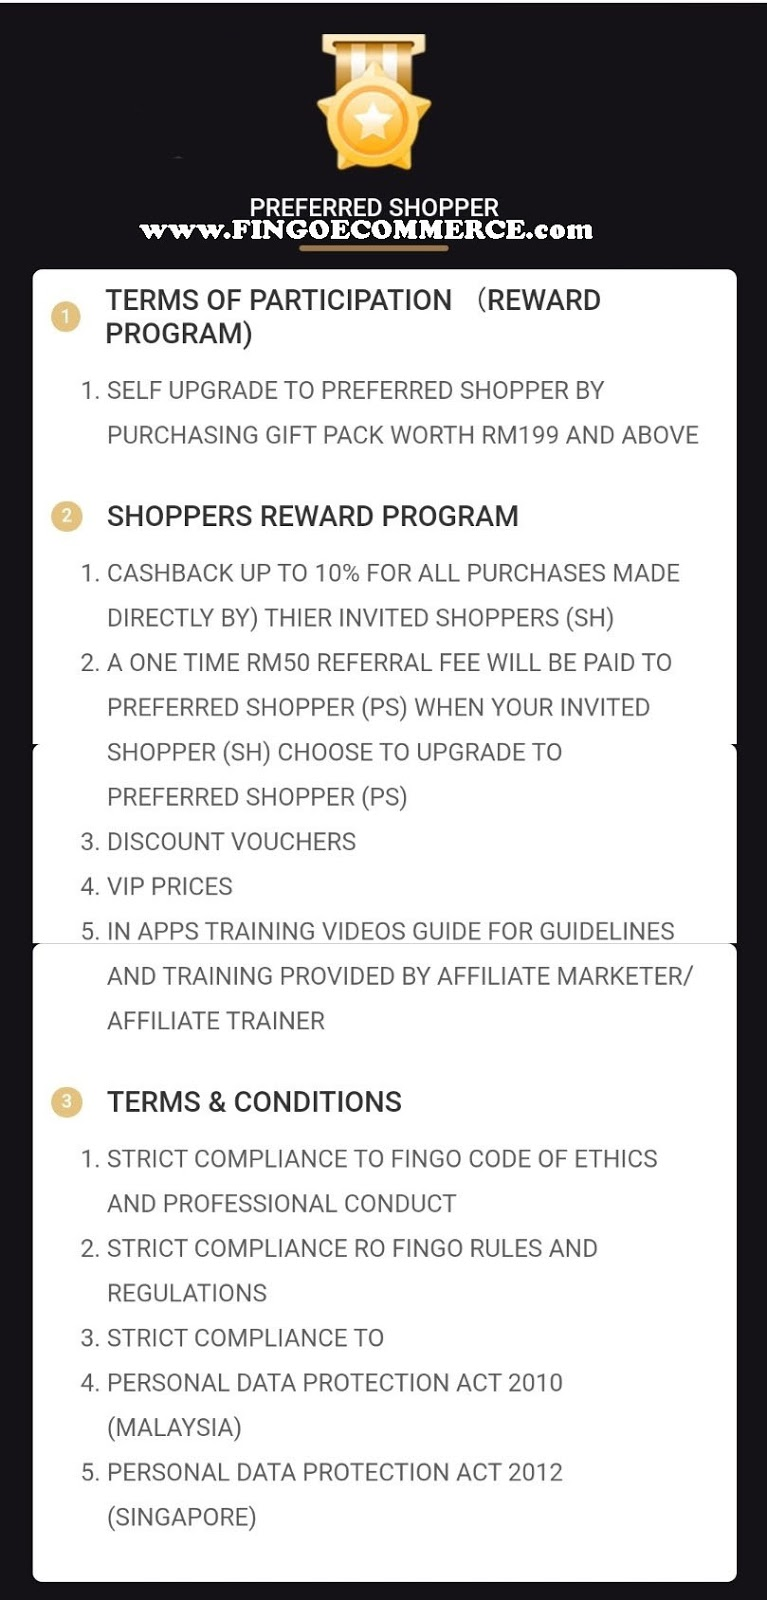 PREFERRED SHOPPER FINGO | FINGO ECOMMERCE